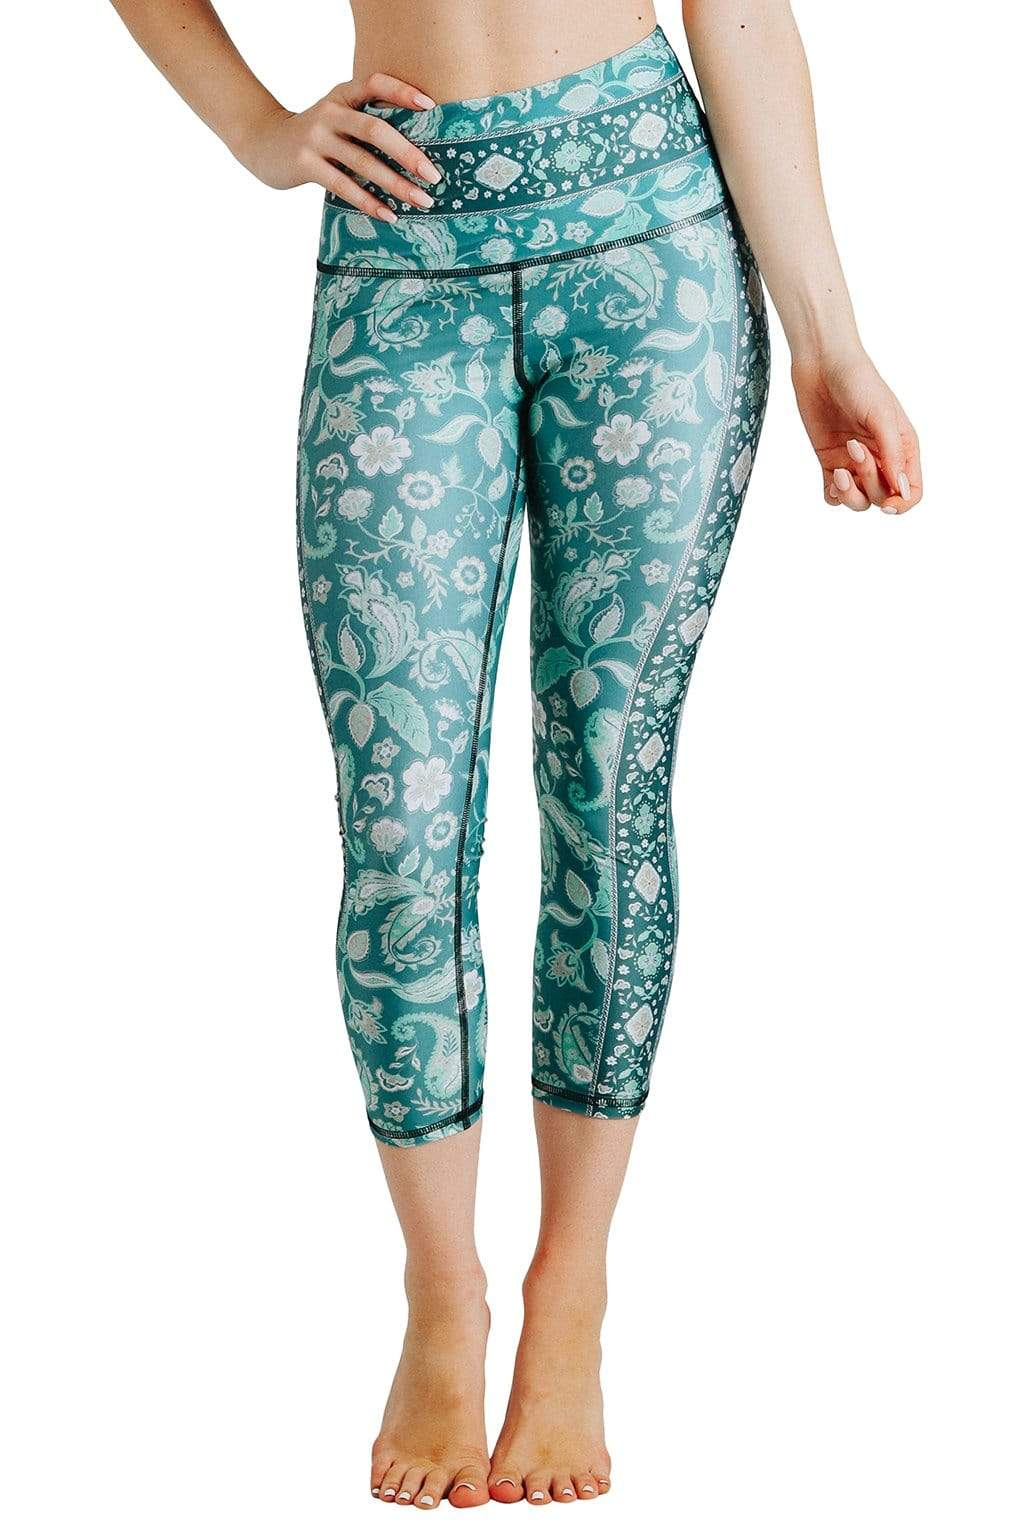 Yoga Democracy Leggings Mint To Be Printed Yoga Crops